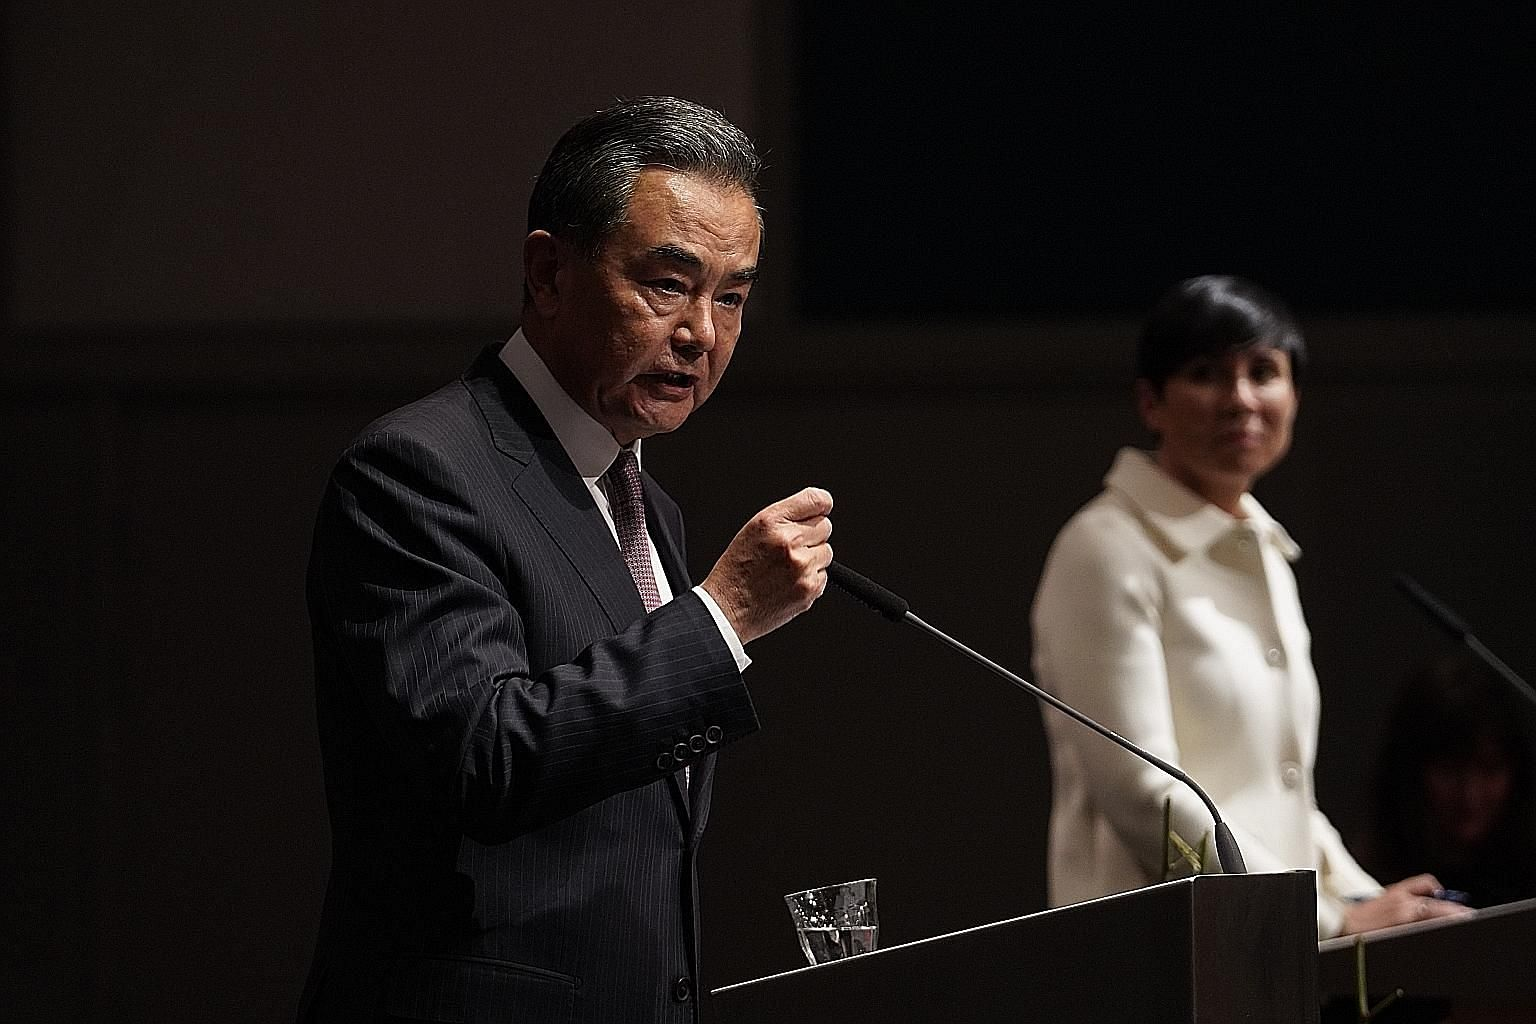 Chinese Foreign Minister Wang Yi speaking on Thursday at a press conference in Oslo, with Norway's Foreign Minister Ine Eriksen Soreide next to him.